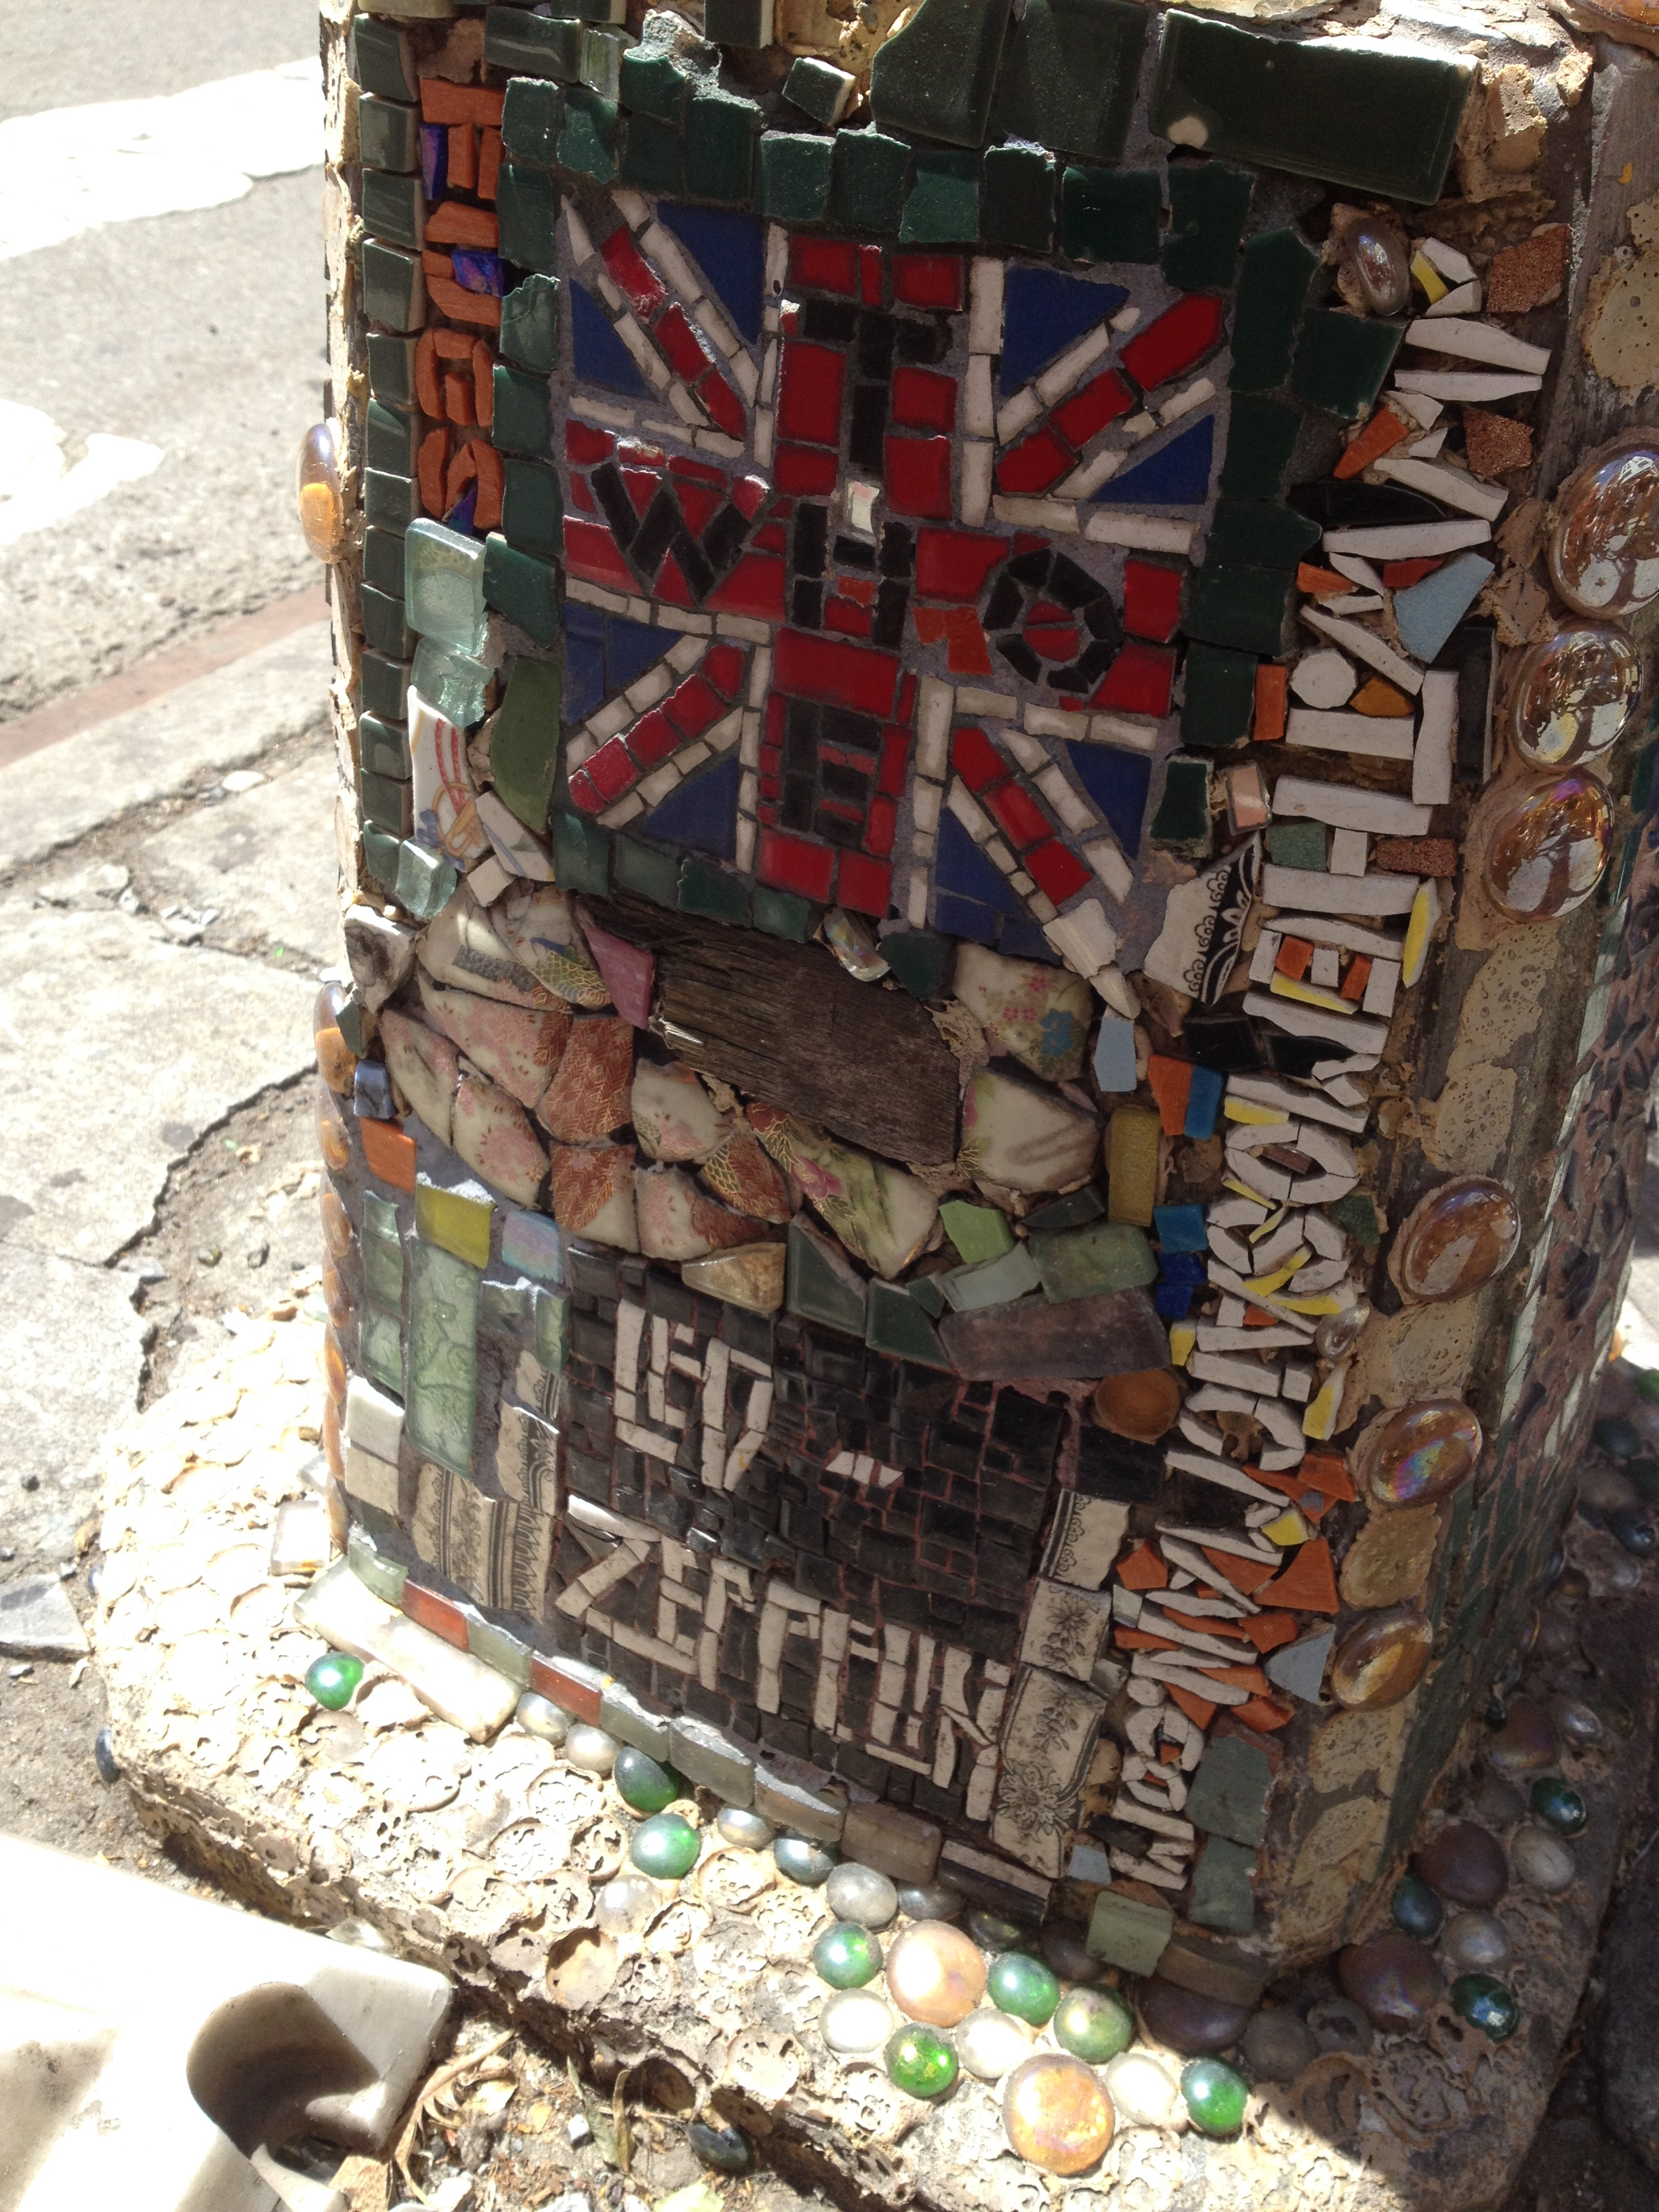 A piece of Pete Townshend's guitar is between the Union Jack and the Led Zeppelin logo.